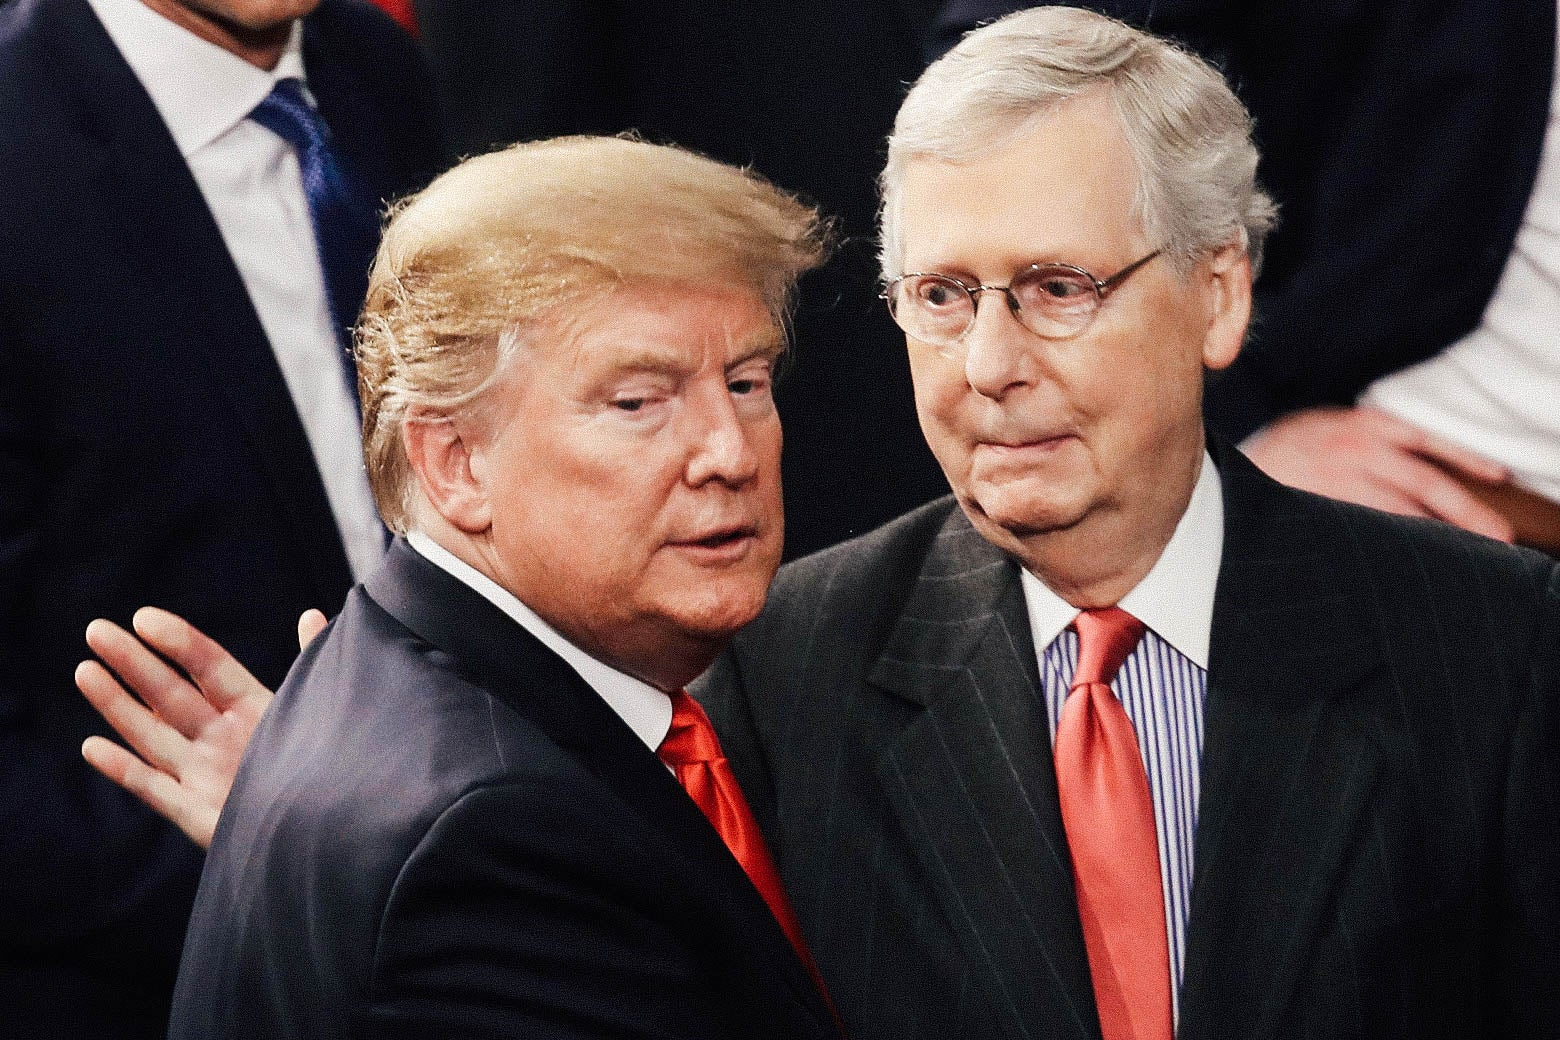 President Donald Trump greets Sen. Mitch McConnell.